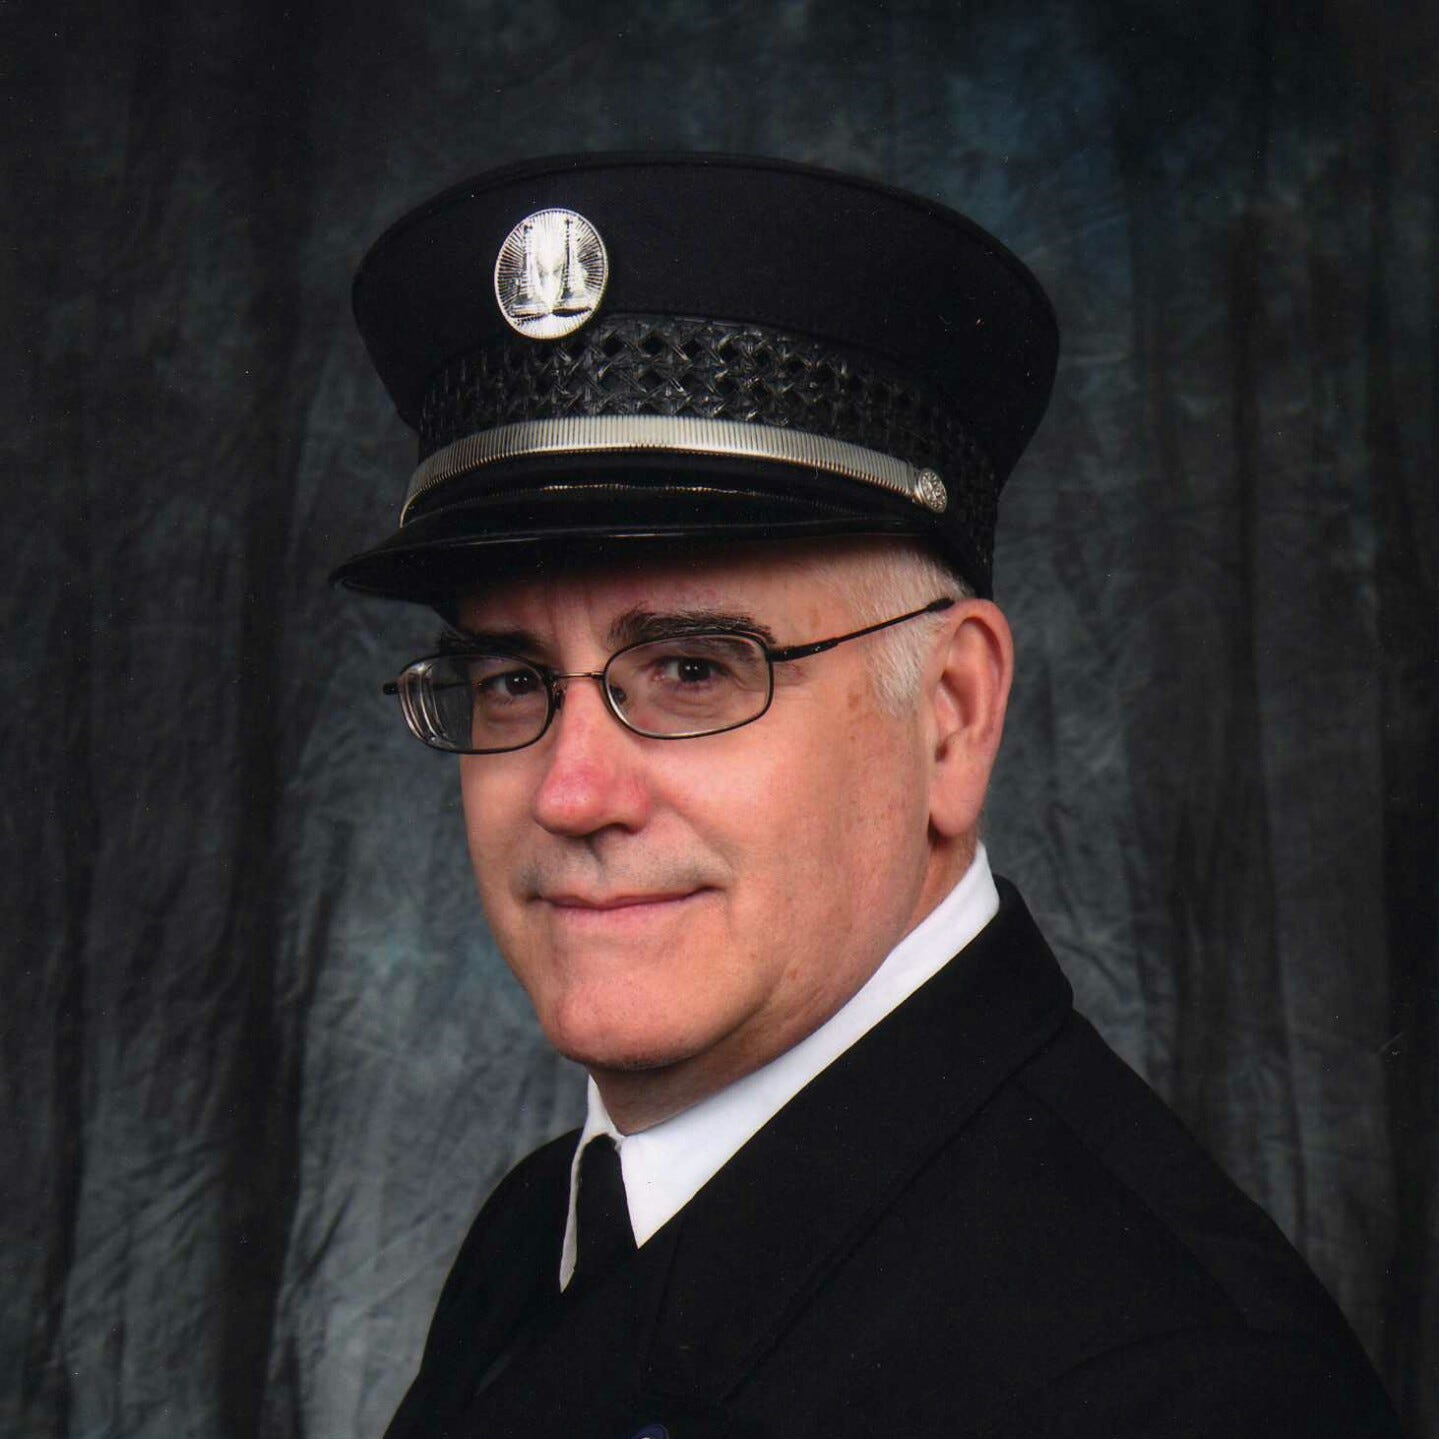 Friends and family rally around New York EMT grandfather, coach with pancreatic cancer